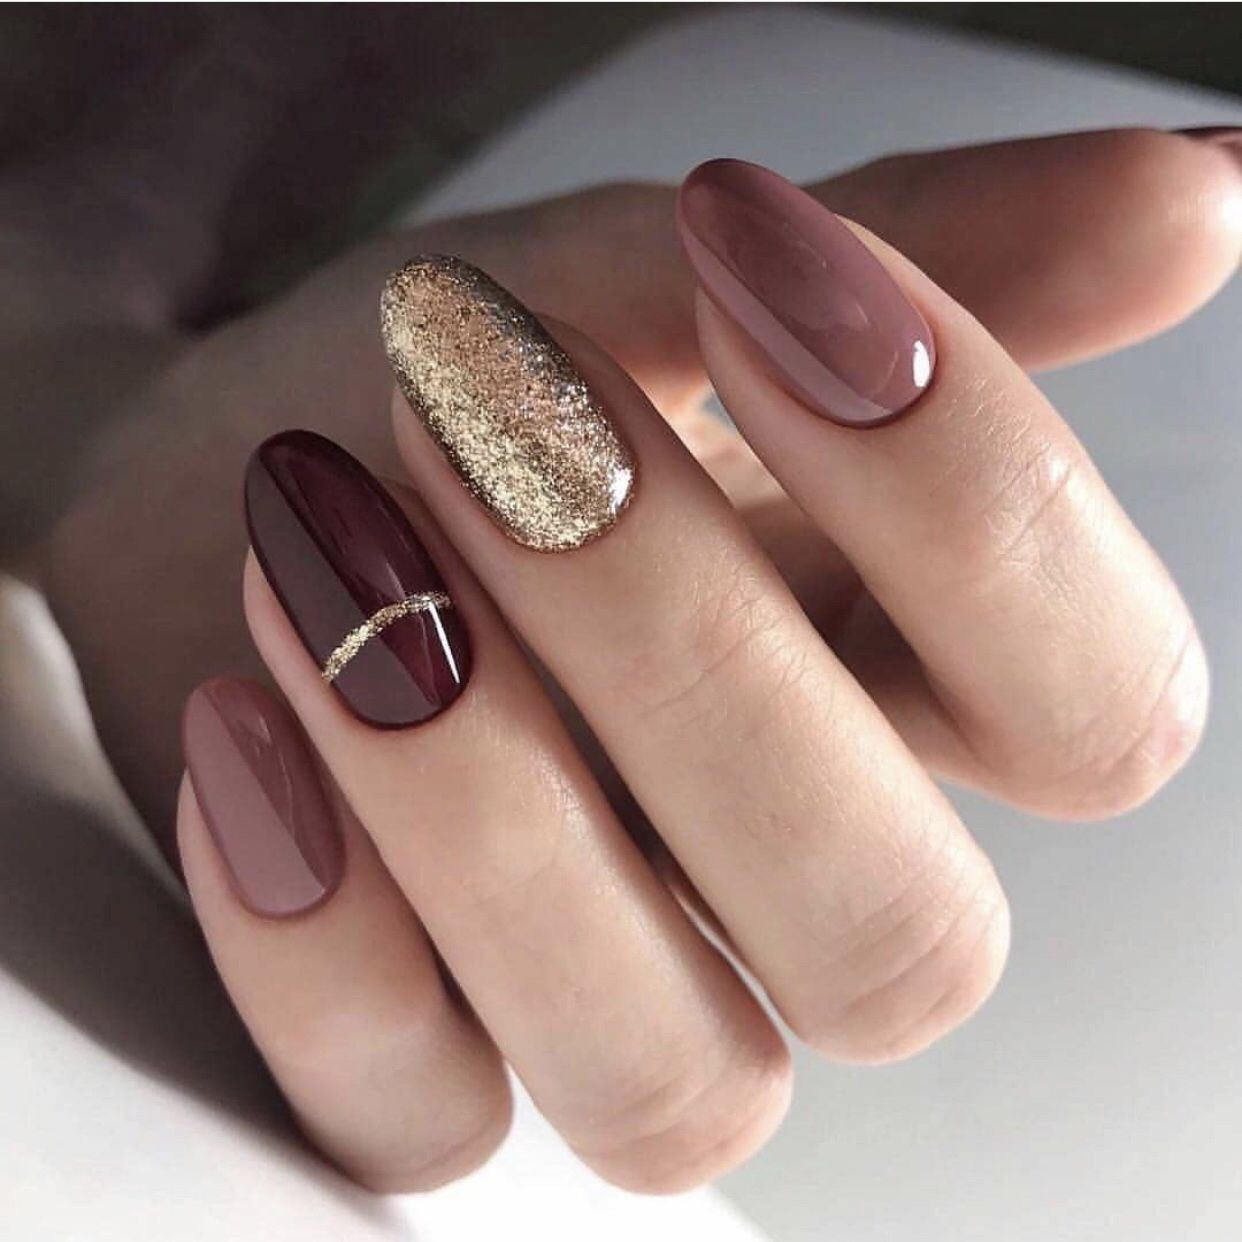 Pin By Izabella On Nails With Images Paznokcie Ladne